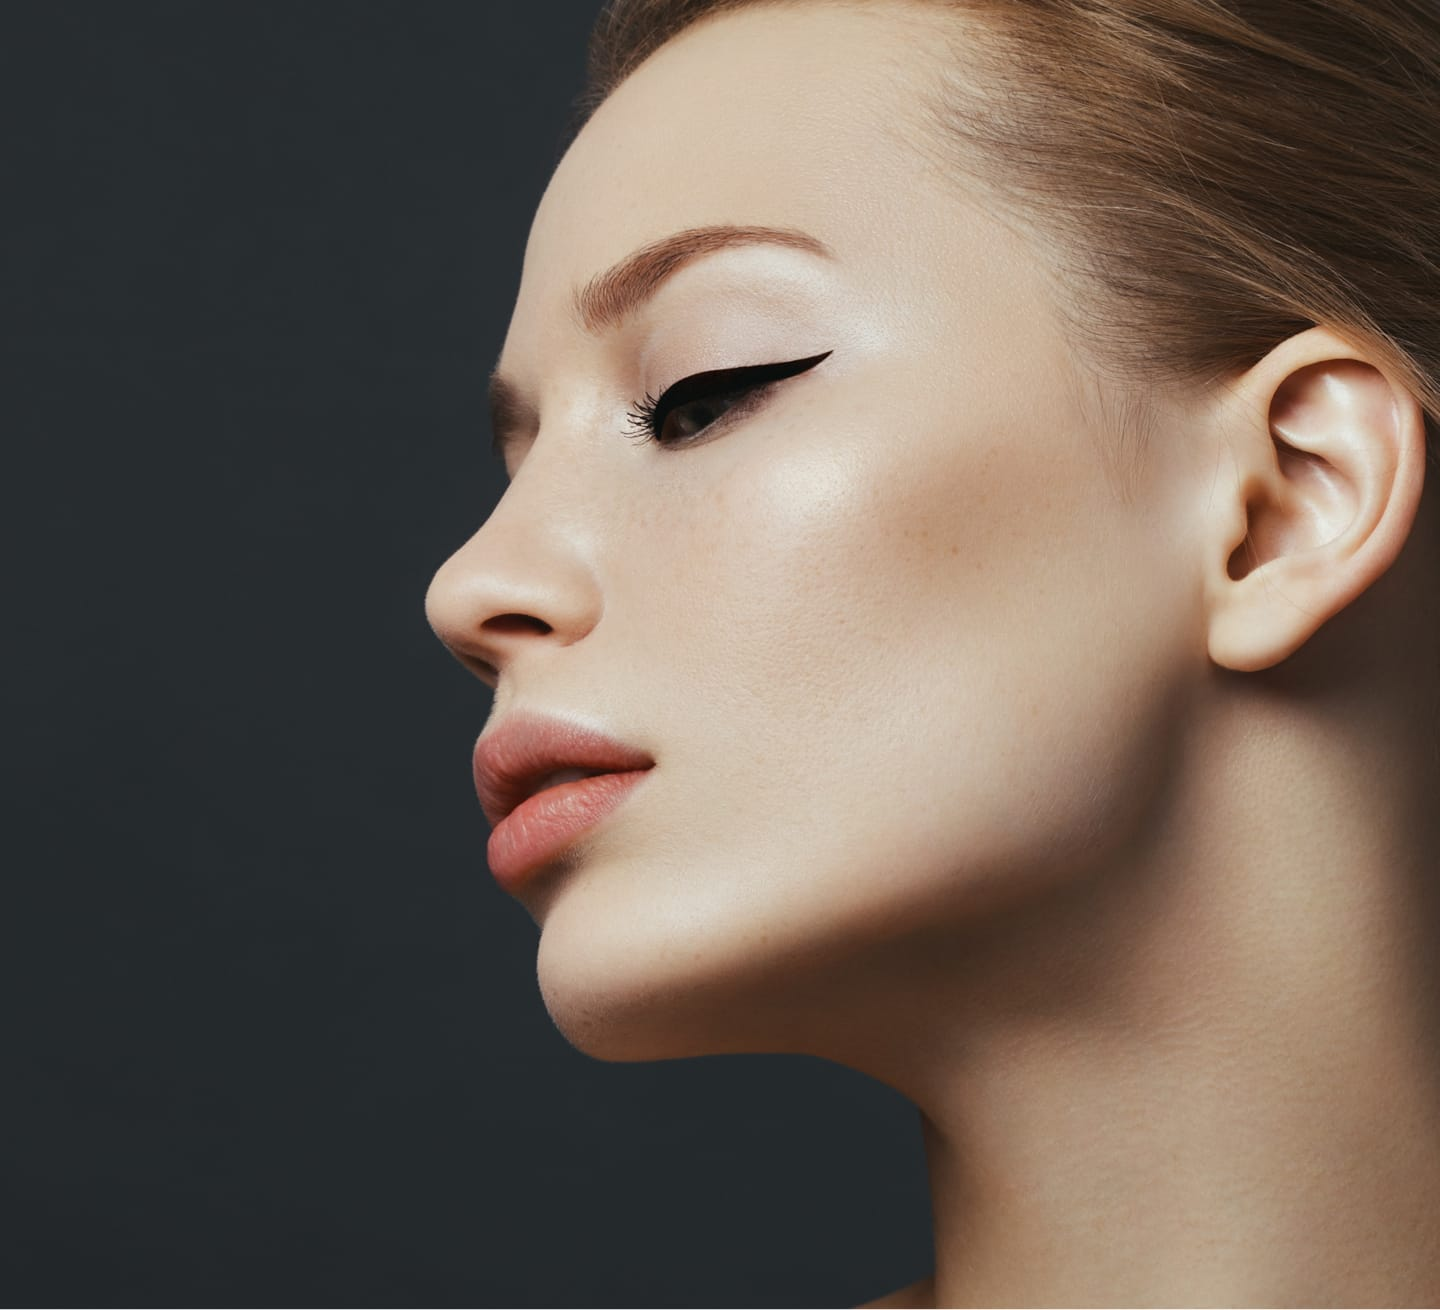 profile of model's face